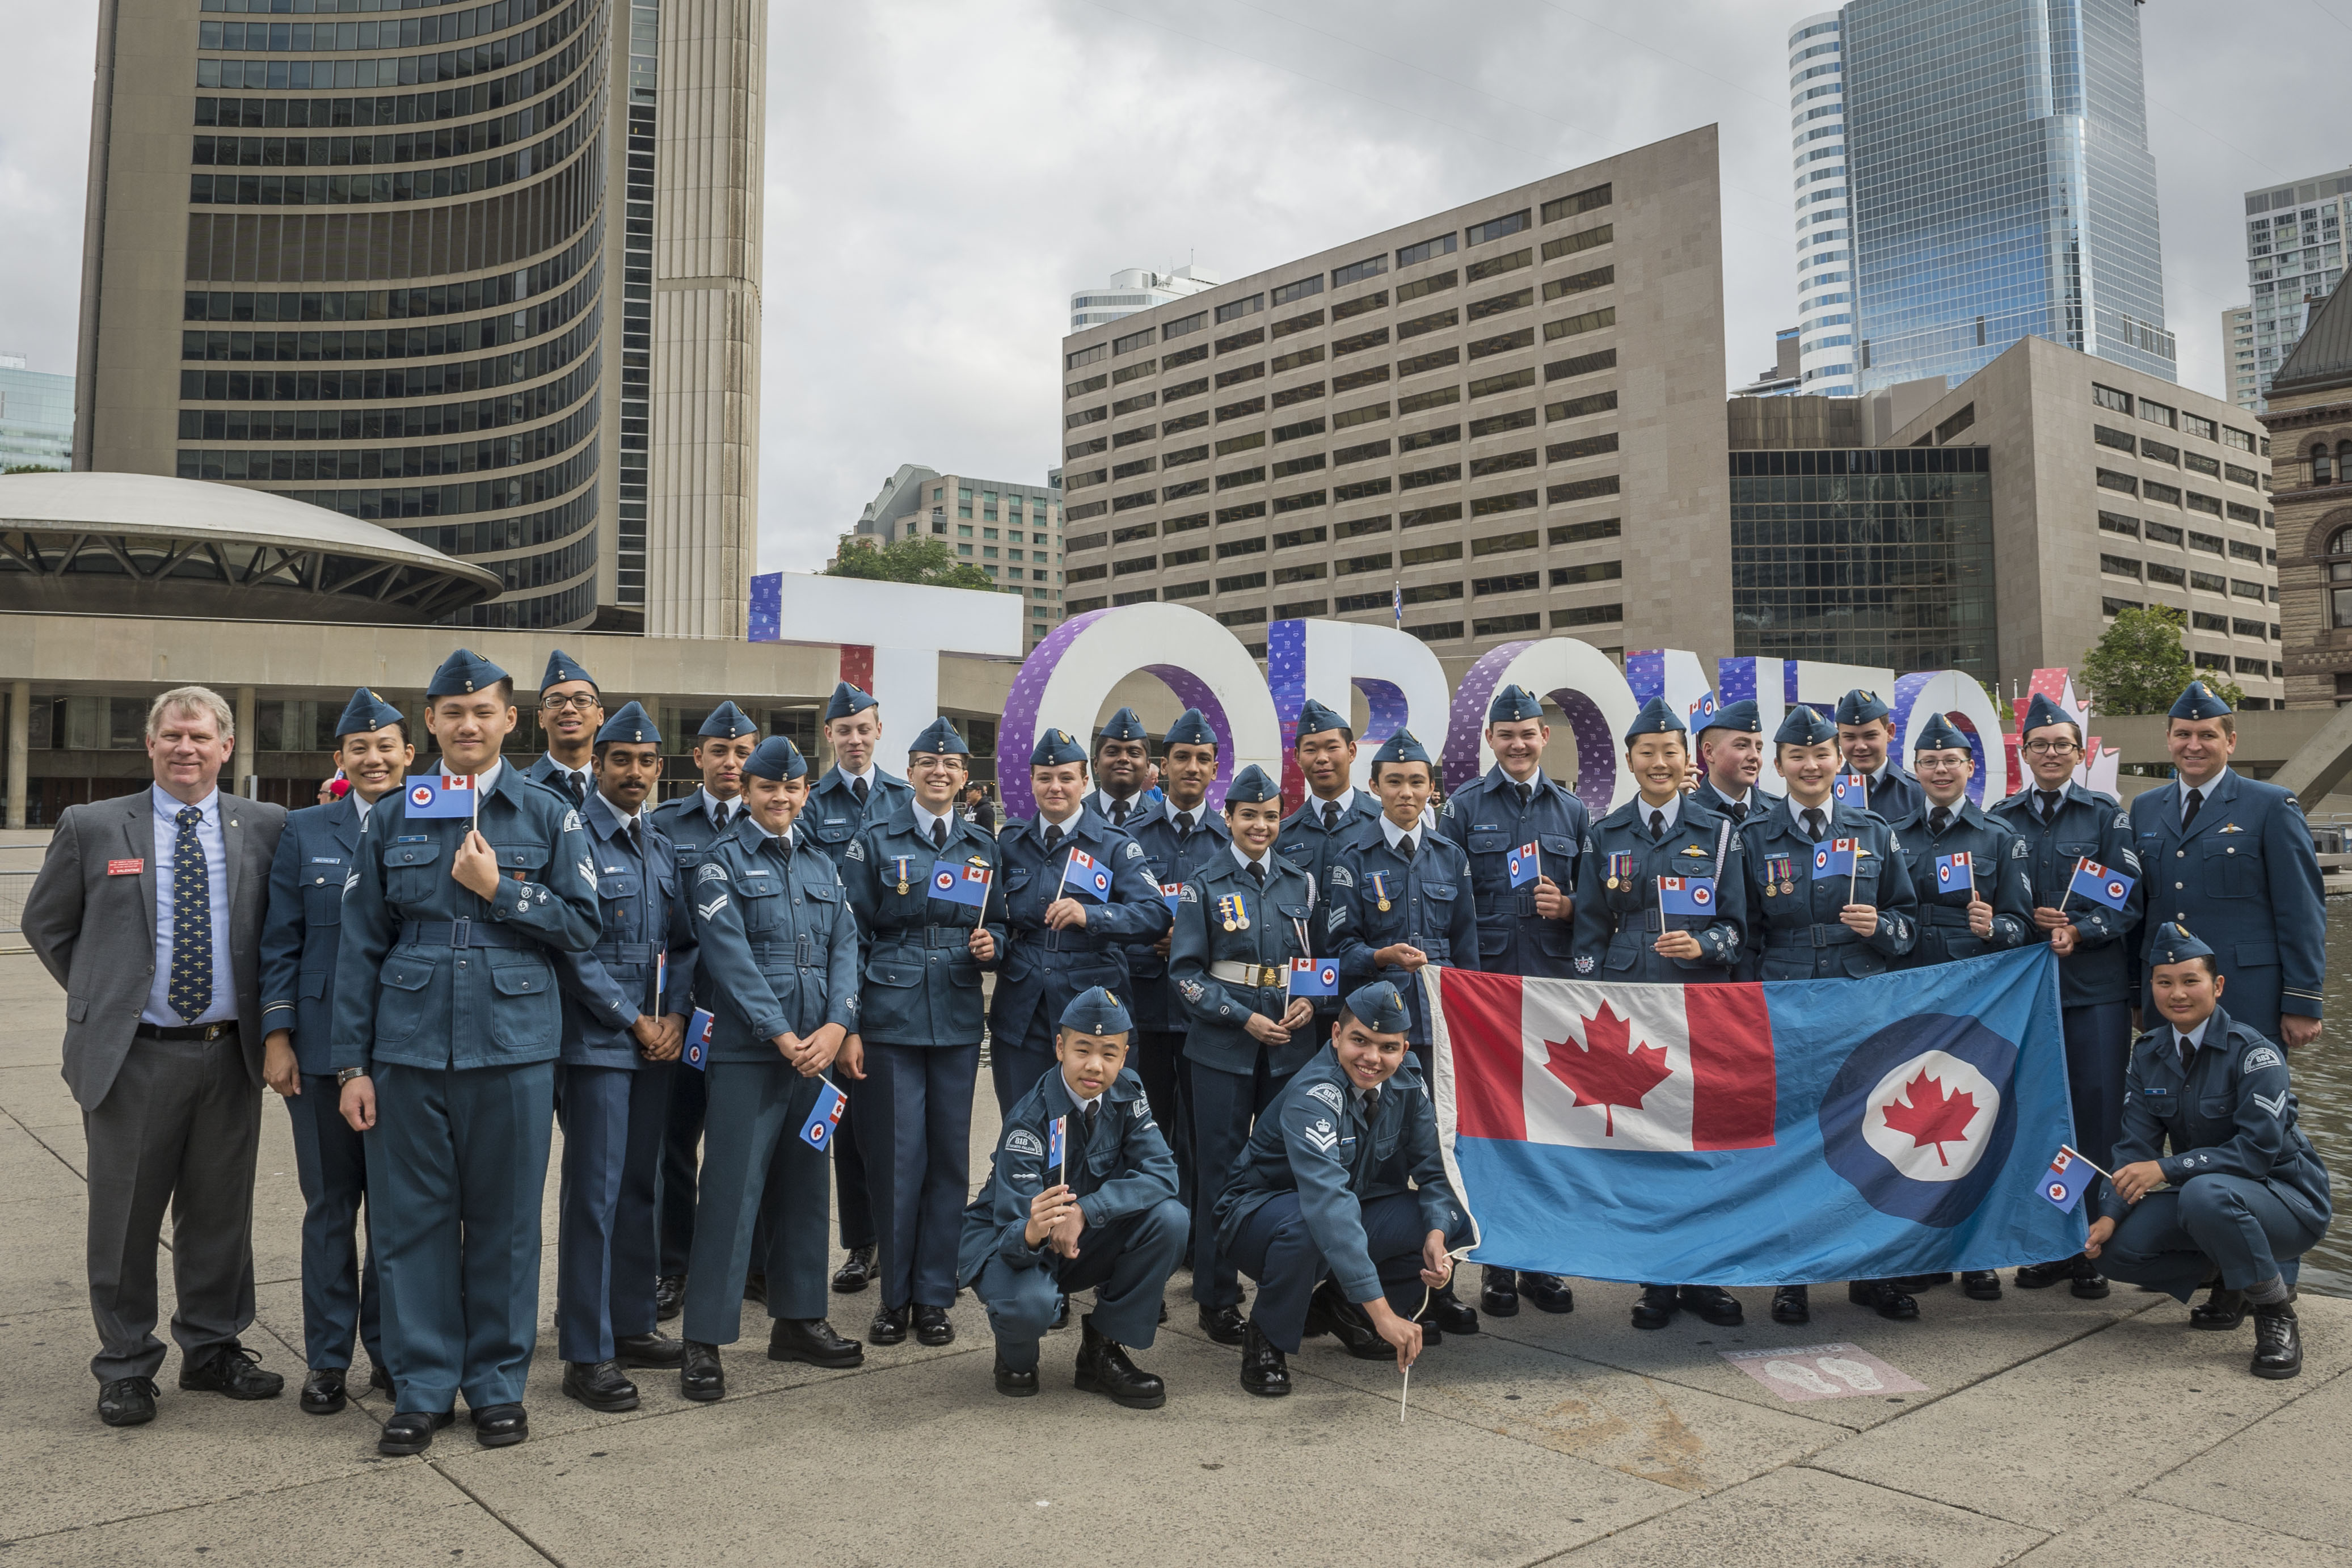 On August 31, 2017, Royal Canadian Air Force Cadets celebrate at the TORONTO sign at Nathan Phillips Square to mark the presentation of new Colours to the RCAF on September 1, also at Nathan Phillips Square. #RCAFProud PHOTO: Corporal Alana Morin, FA03-2017-0109-011